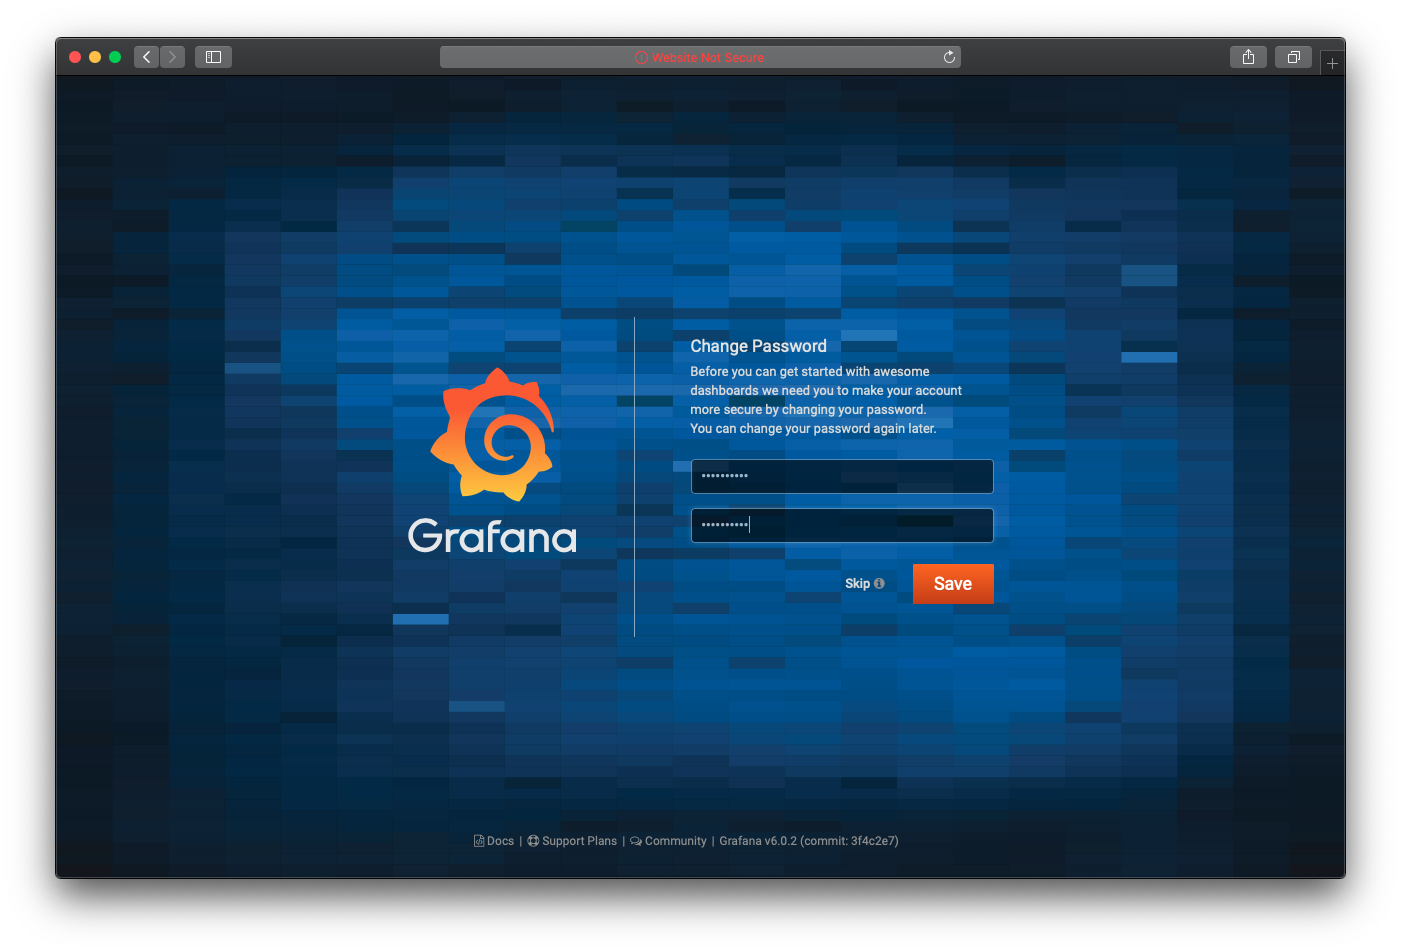 Grafana update password